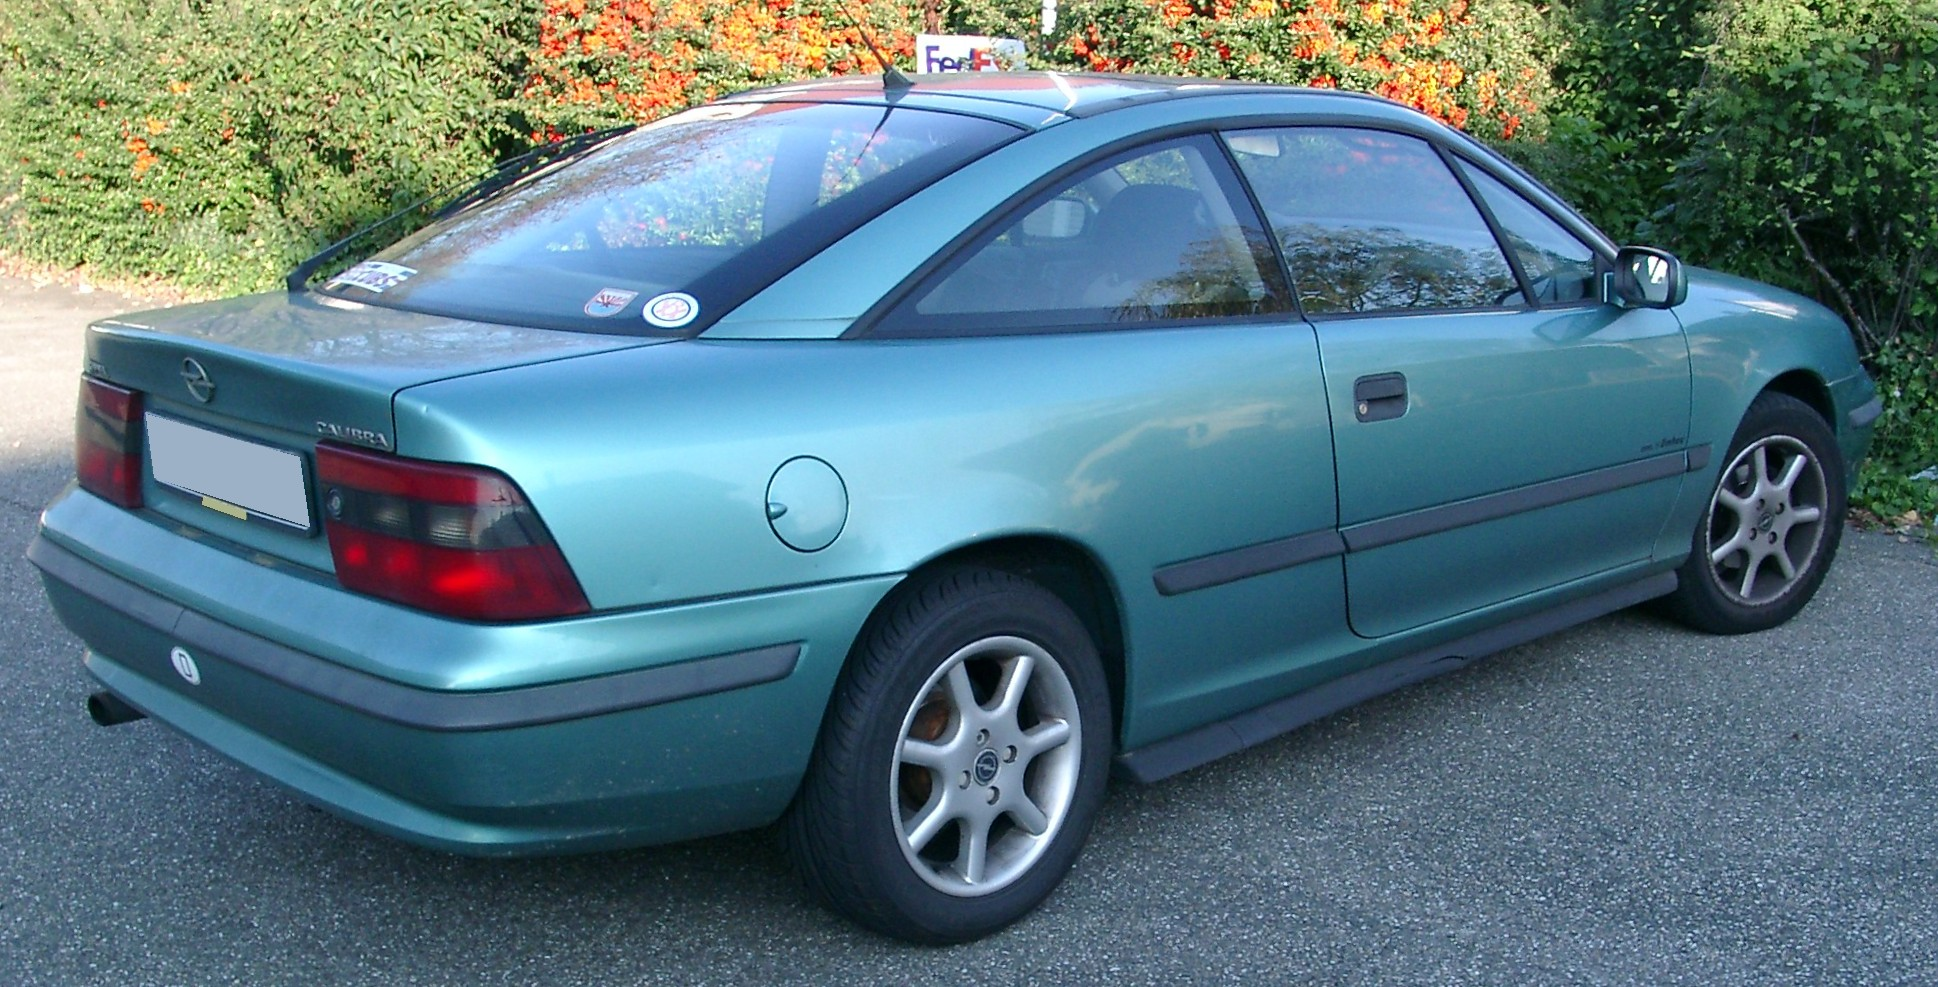 File:Opel Calibra rear 20071007.jpg - Wikimedia Commons